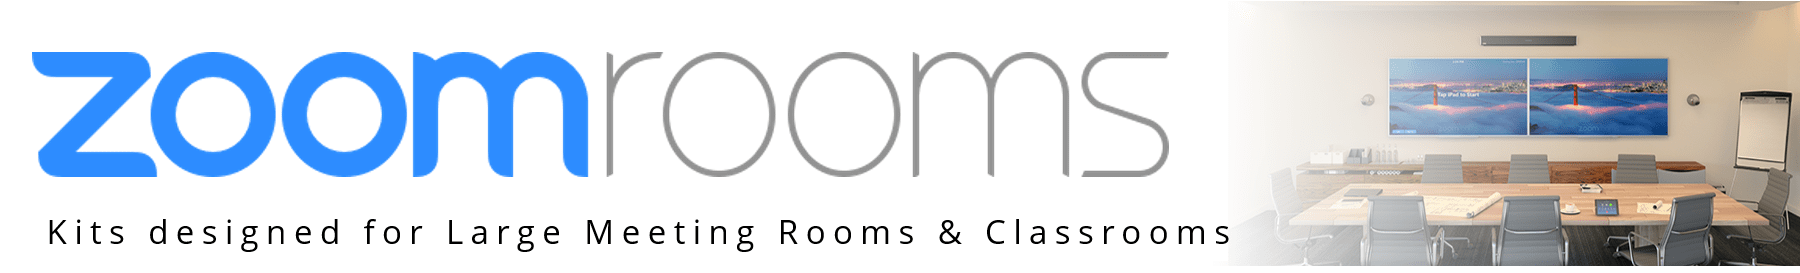 Zoom Rooms Board Rooms and Classroom kits from VCGear.com